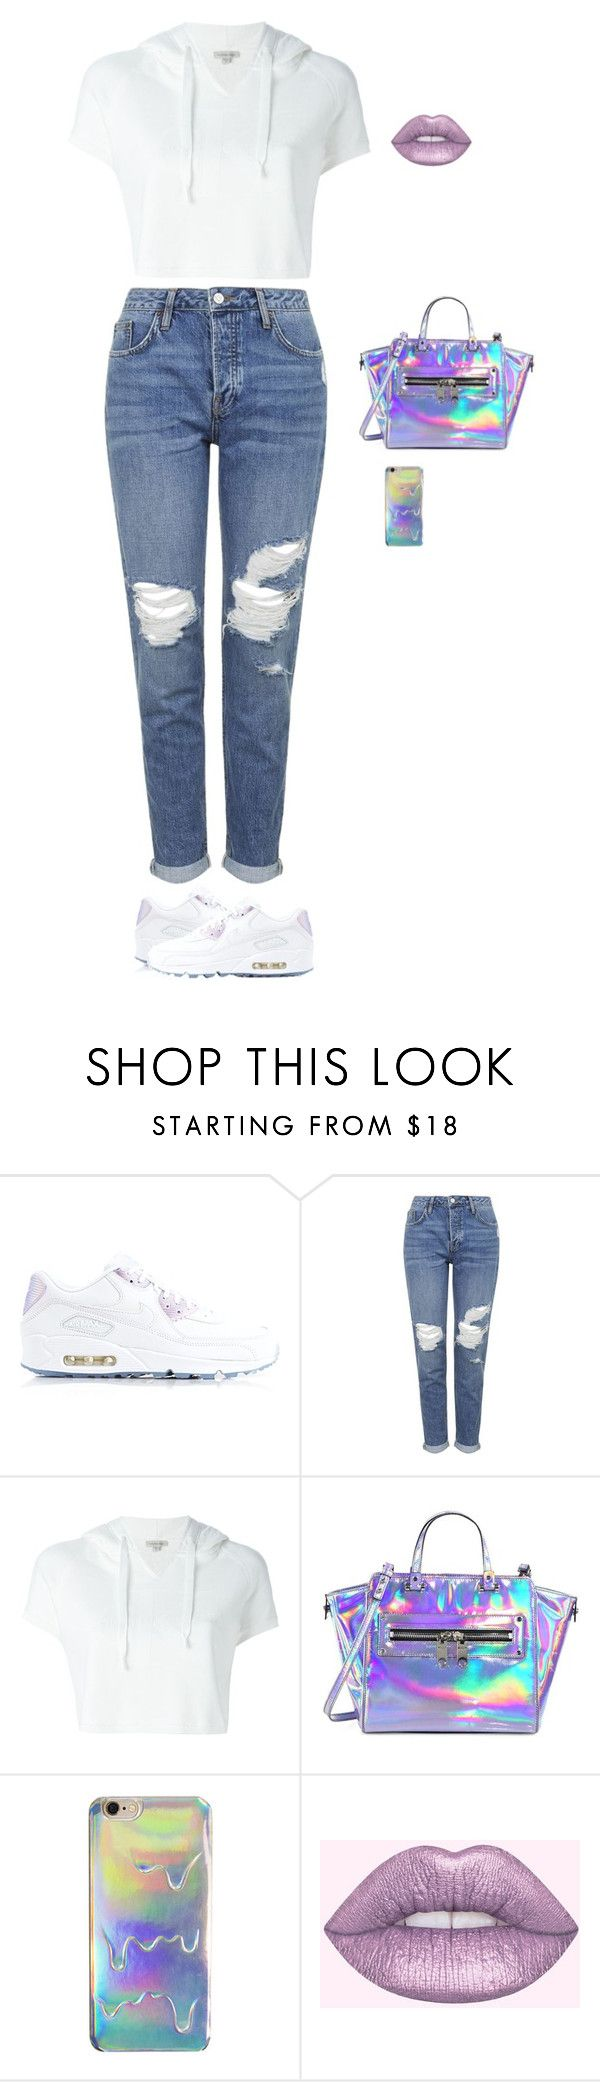 """""""Holographic"""" by wildcalifornia2016 ❤ liked on Polyvore featuring NIKE, Topshop, Calvin Klein Jeans, Milly and Lime Crime"""